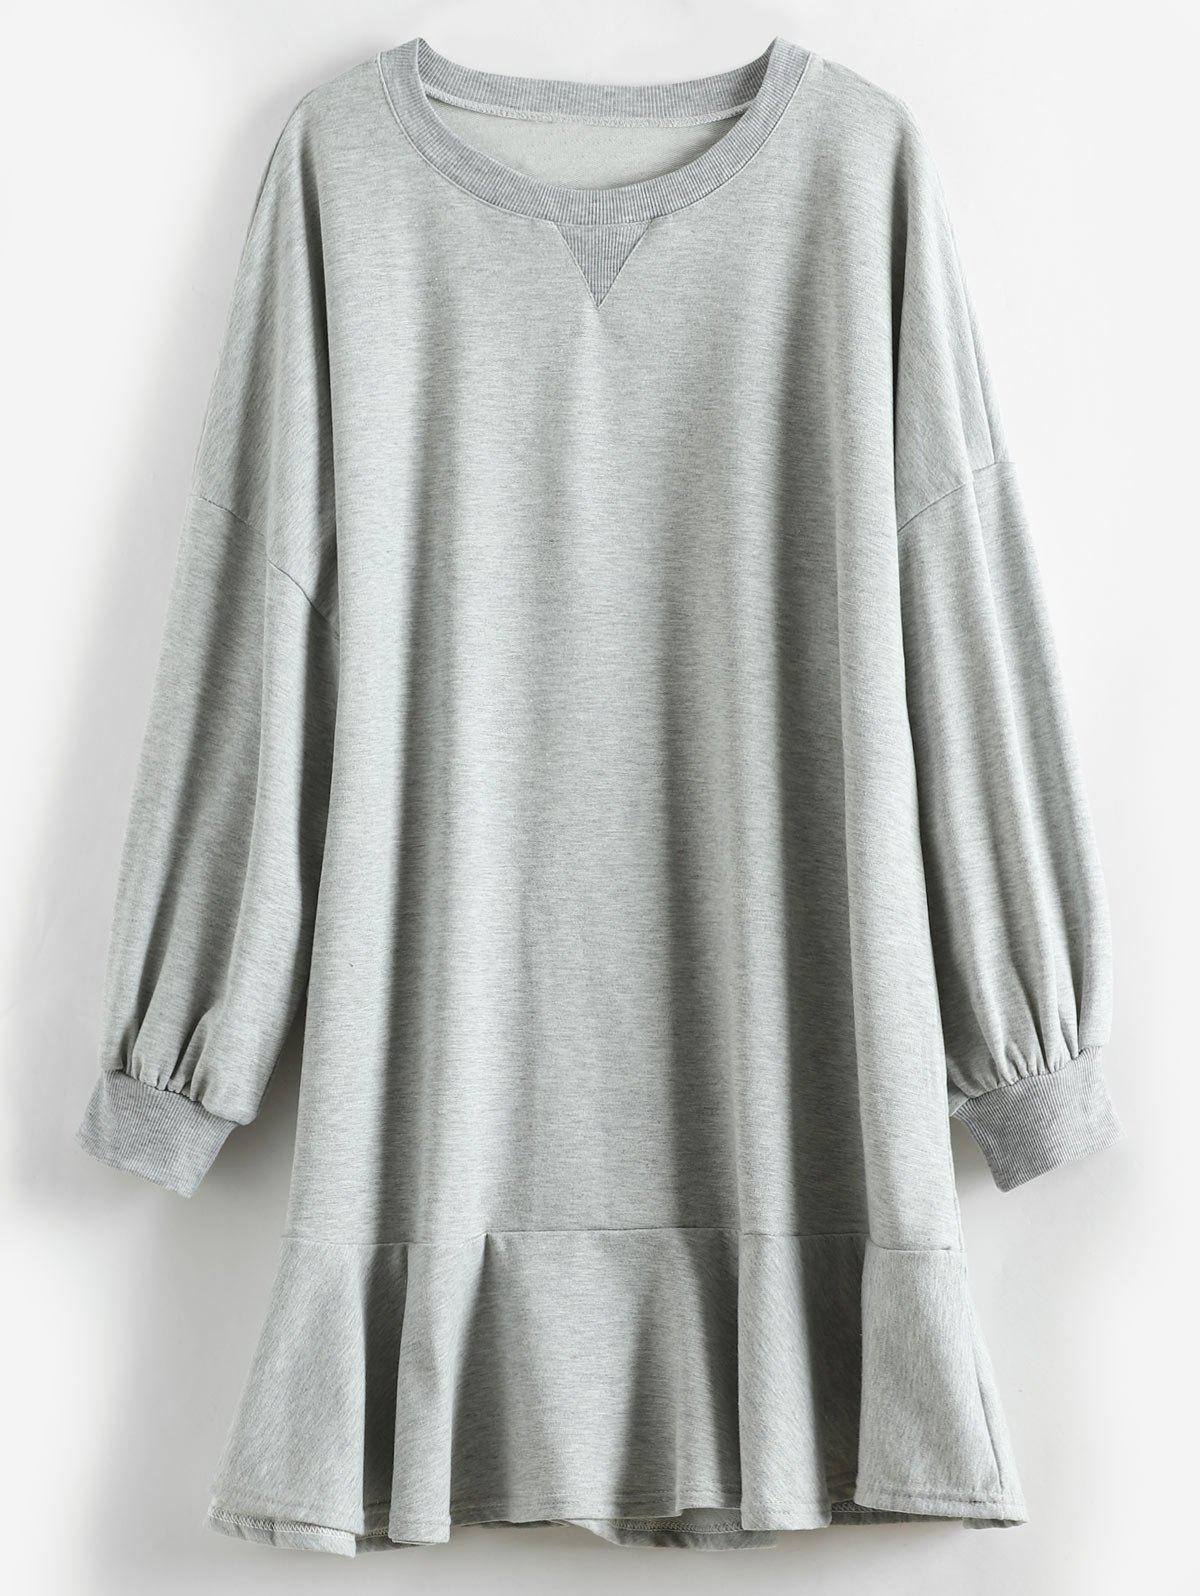 Puff Sleeve Plus Size Flounce Hem Dress - GRAY L